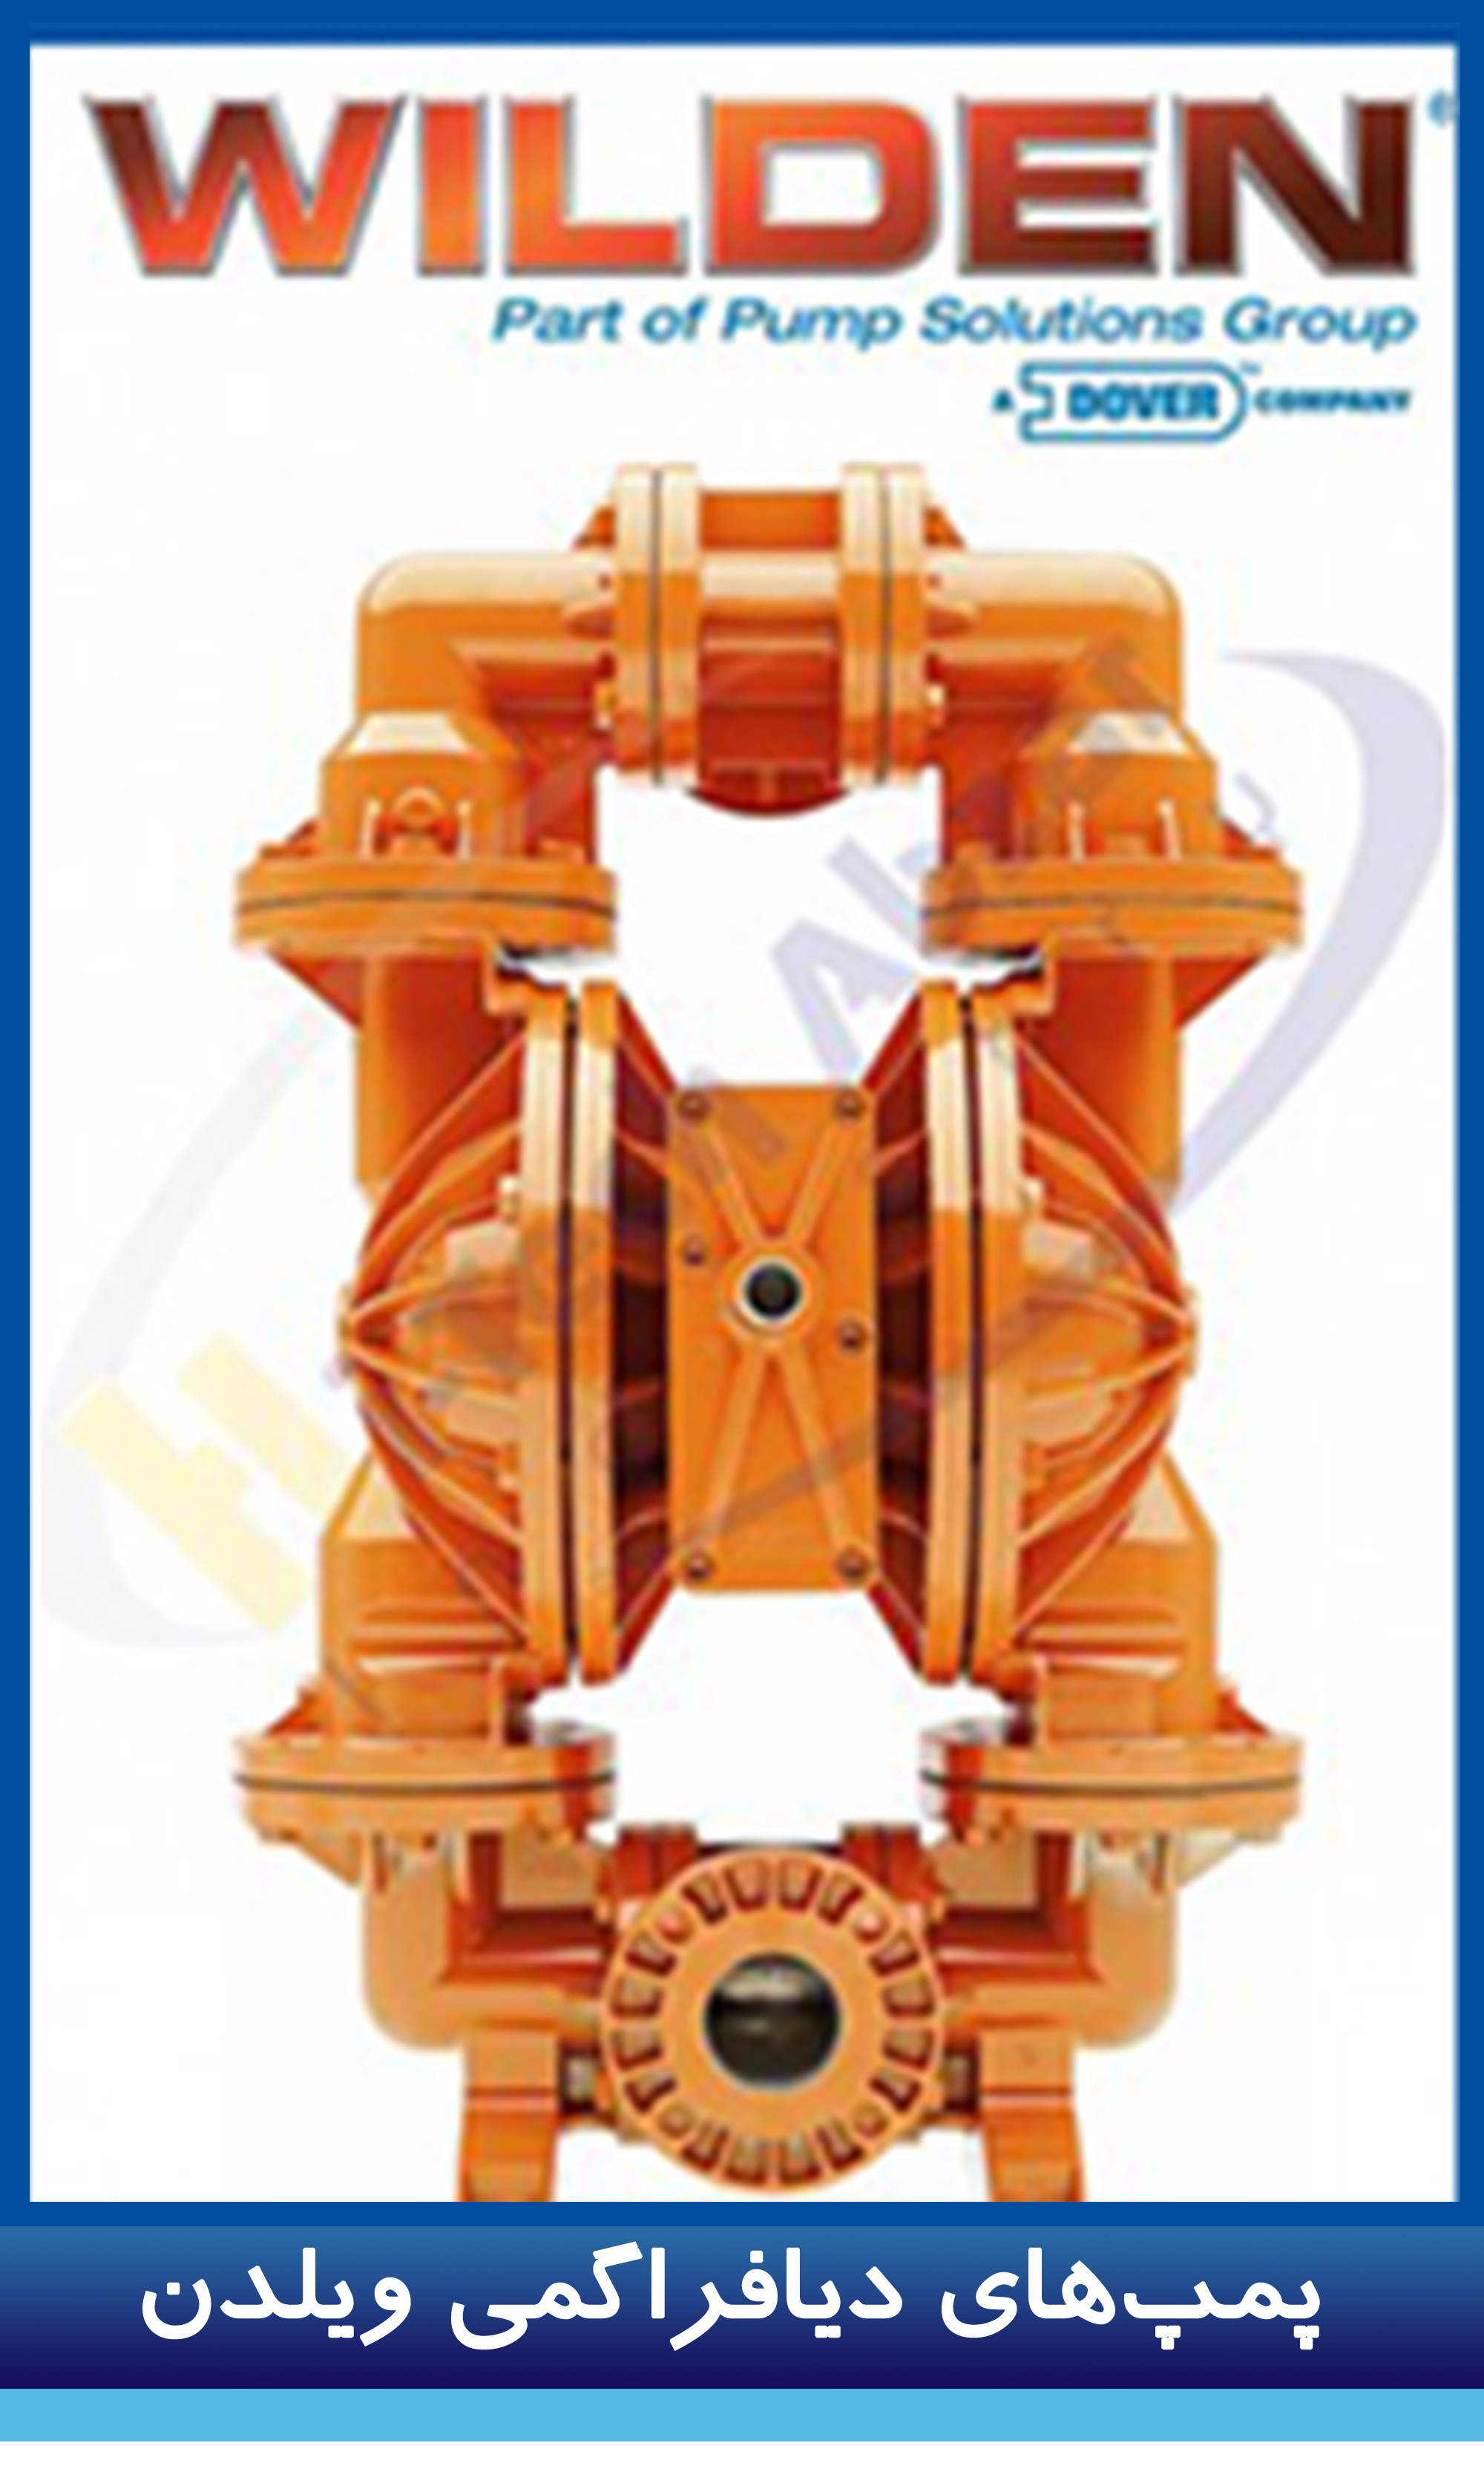 wilden_diaphragm_pump_400